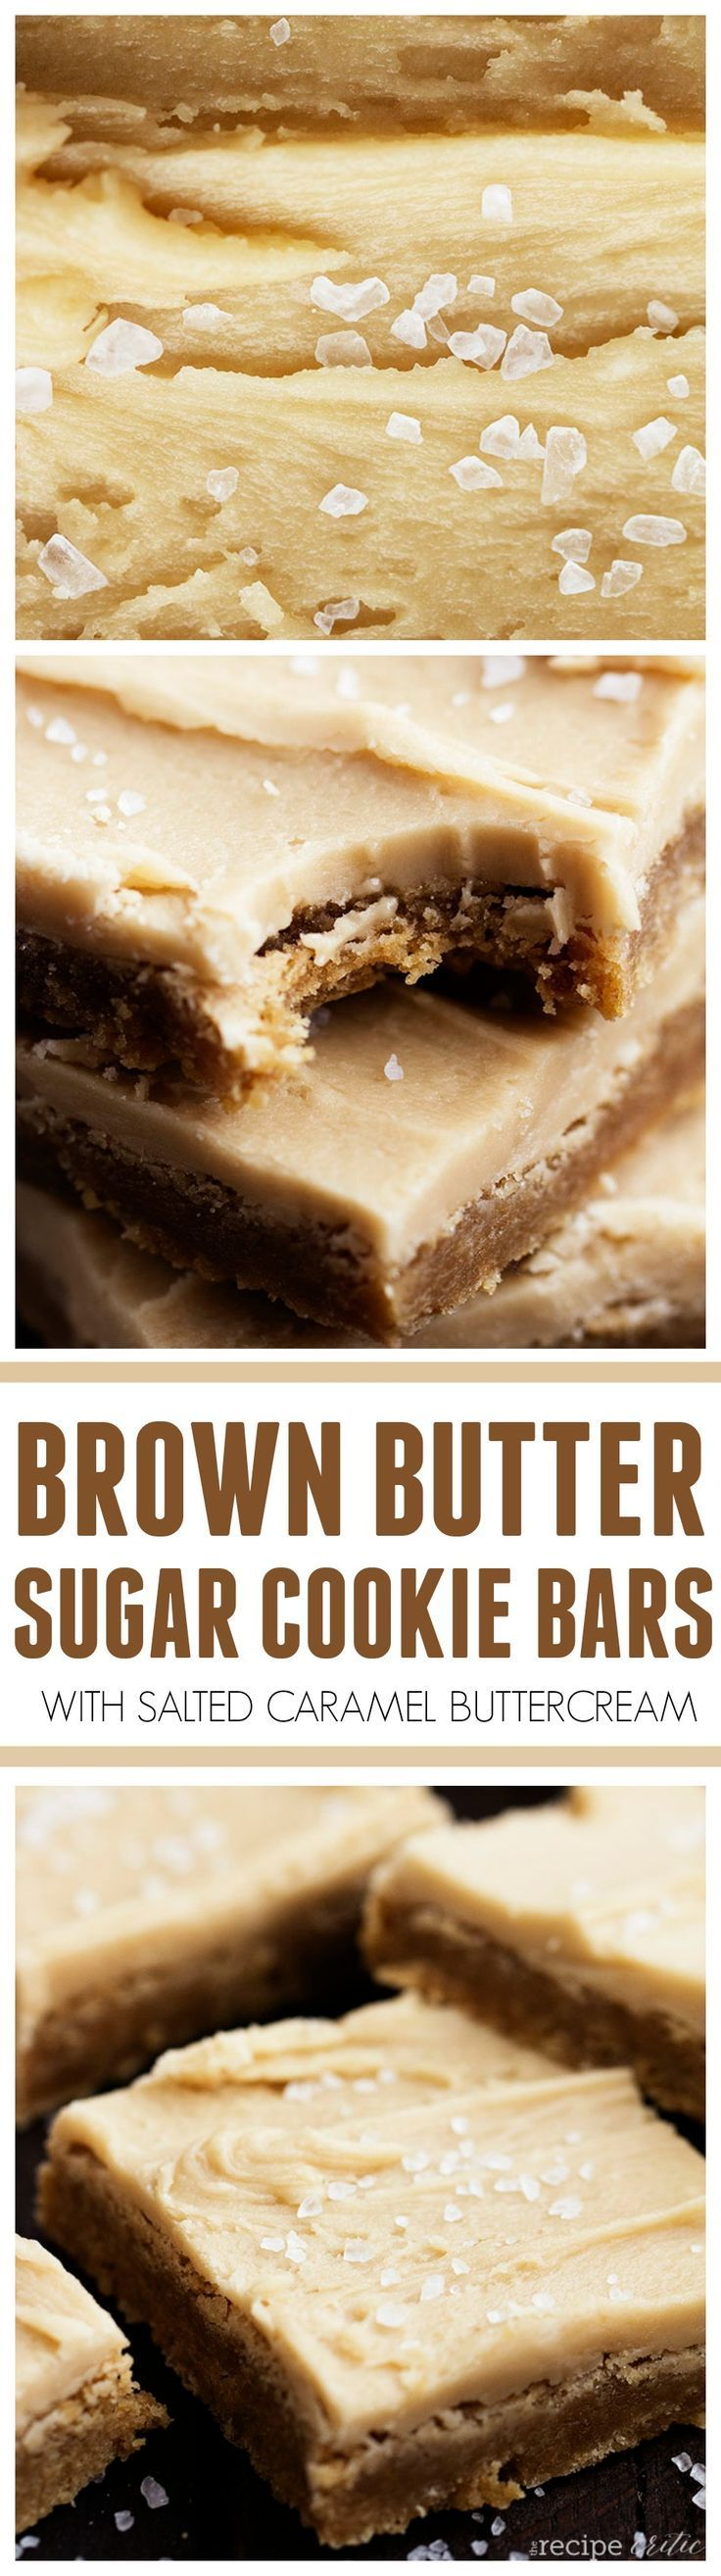 These Brown Butter Sugar Cookie Bars are so easy and the BEST that you will make. The salted caramel buttercream is INCREDIBLE!